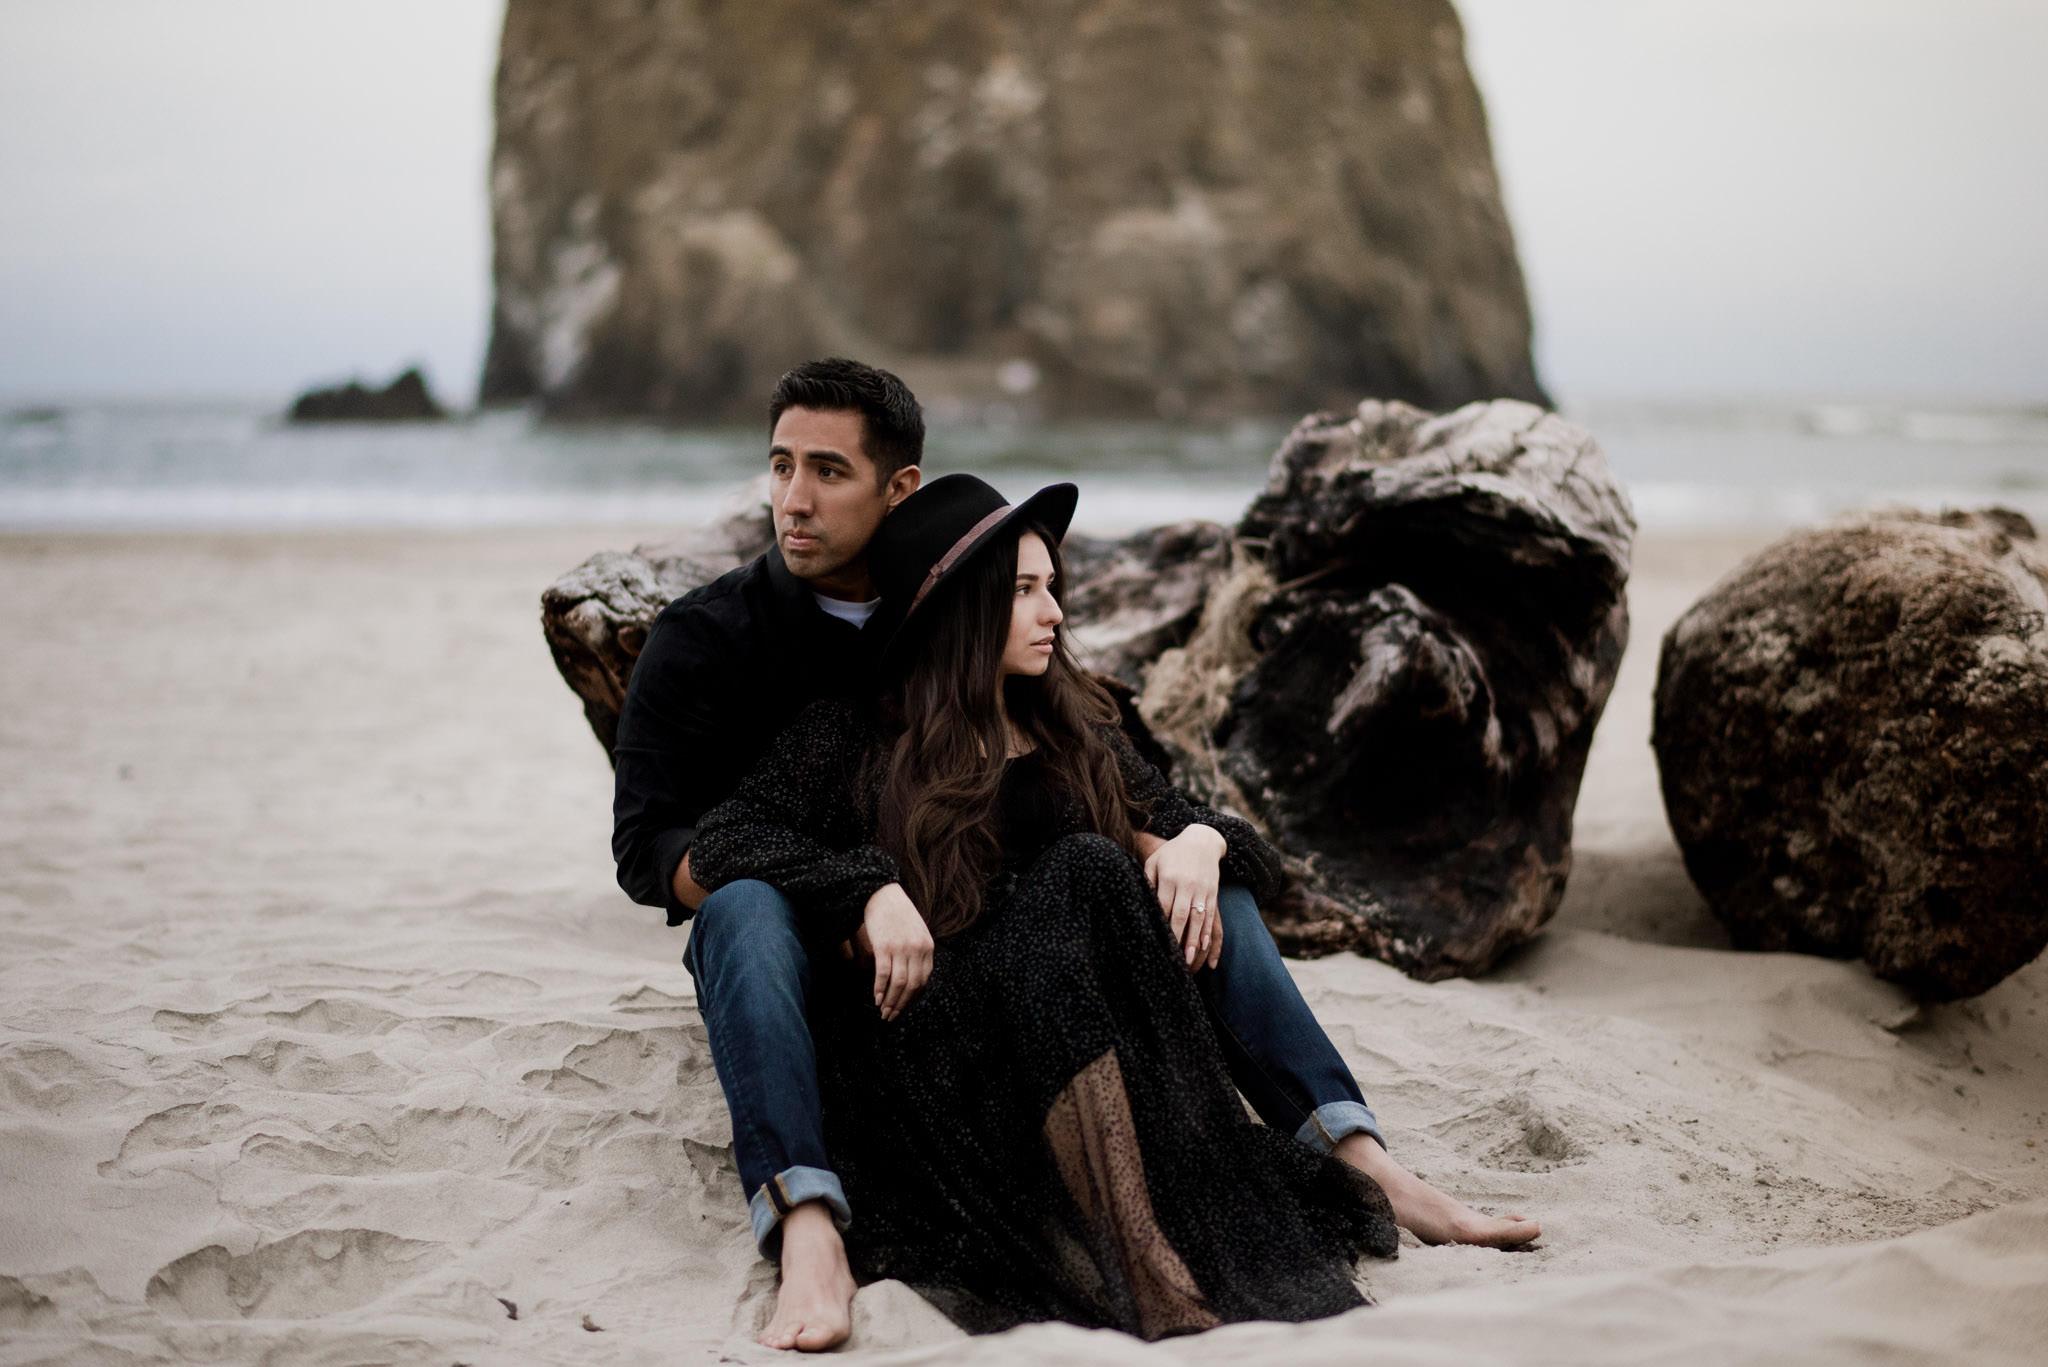 oregon-cannon-beach-ecola-park-adventure-destination-houston-engagement-photographer-sm-35.jpg